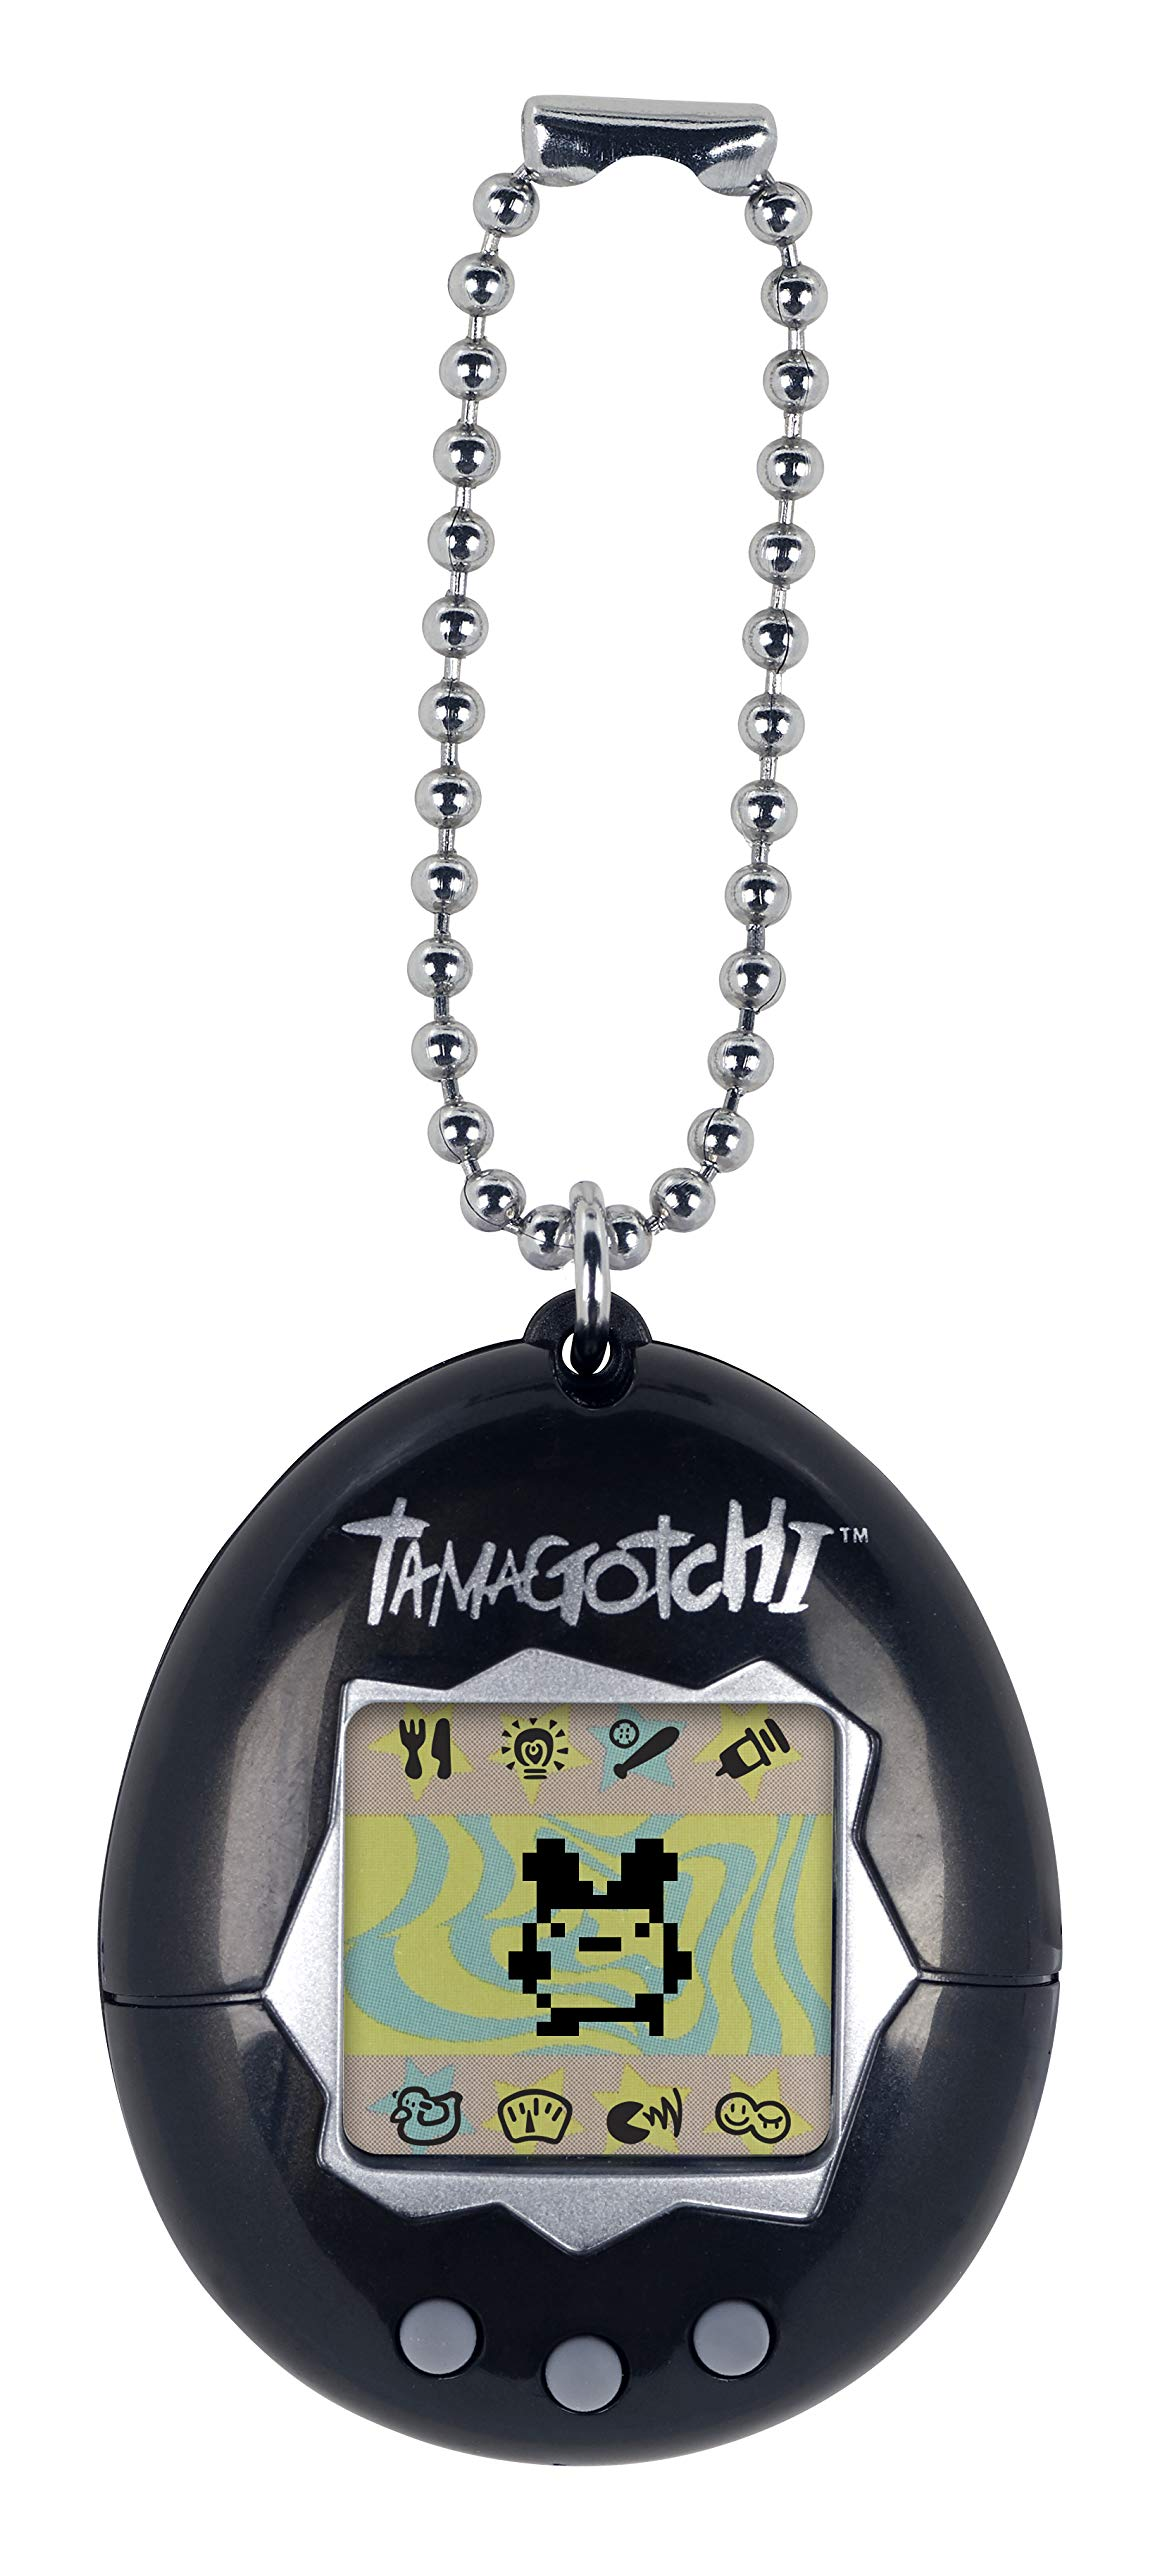 Tamagotchi Electronic Game, Black by Tamagotchi (Image #1)